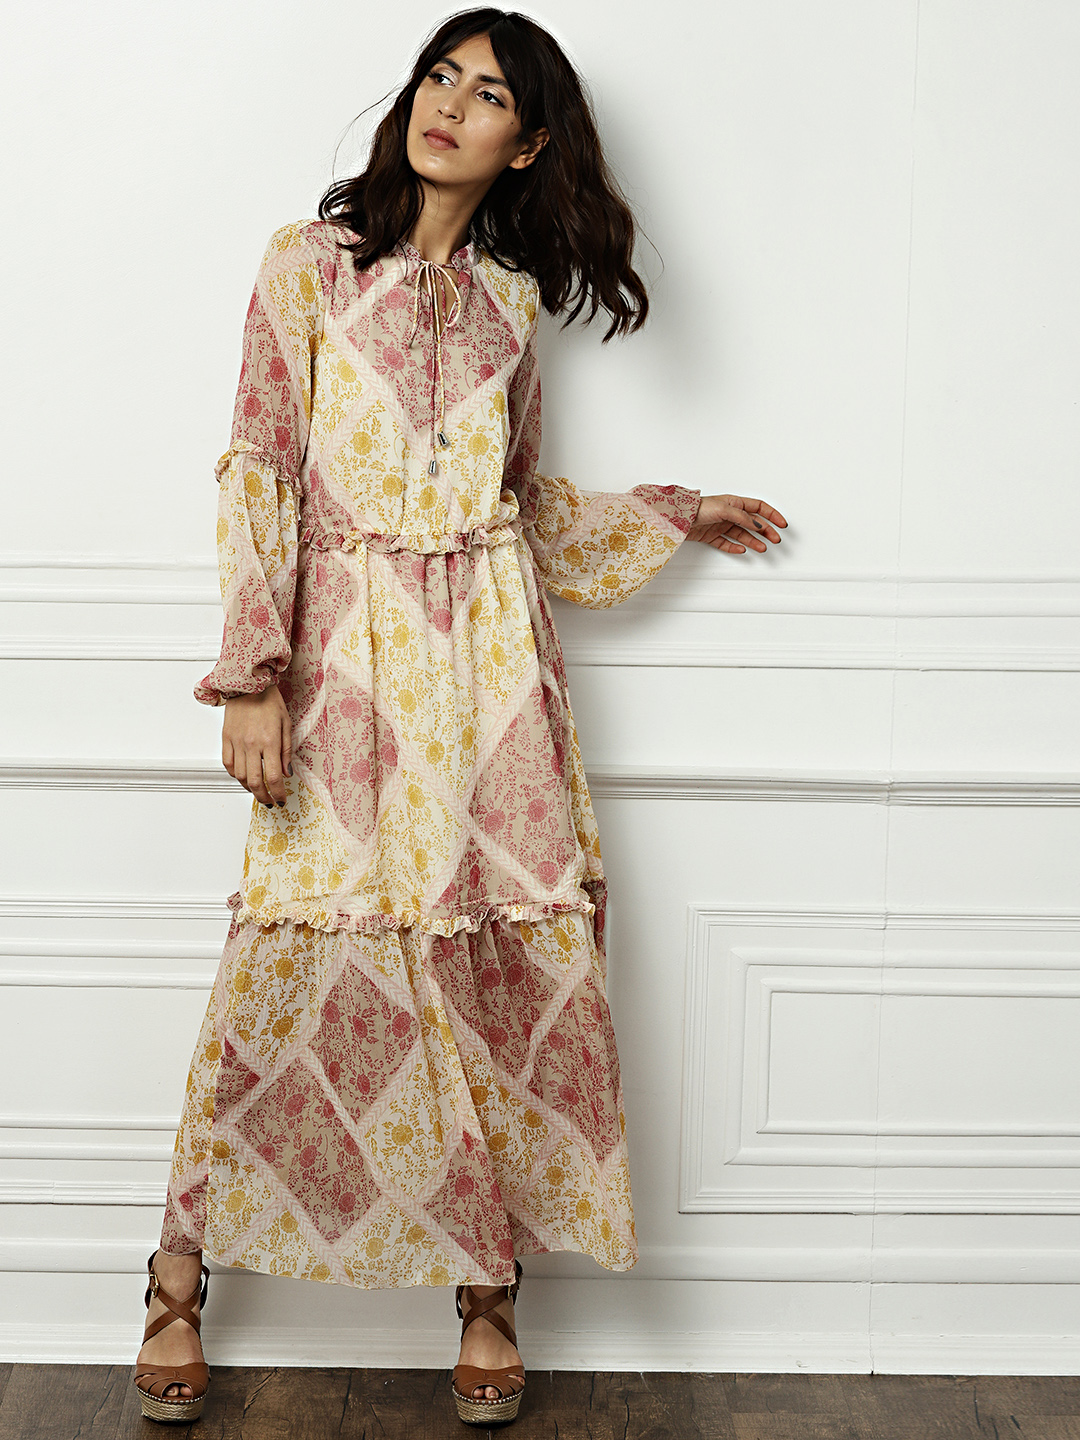 all about you from Deepika Padukone Women Beige Printed A-Line Dress Price in India